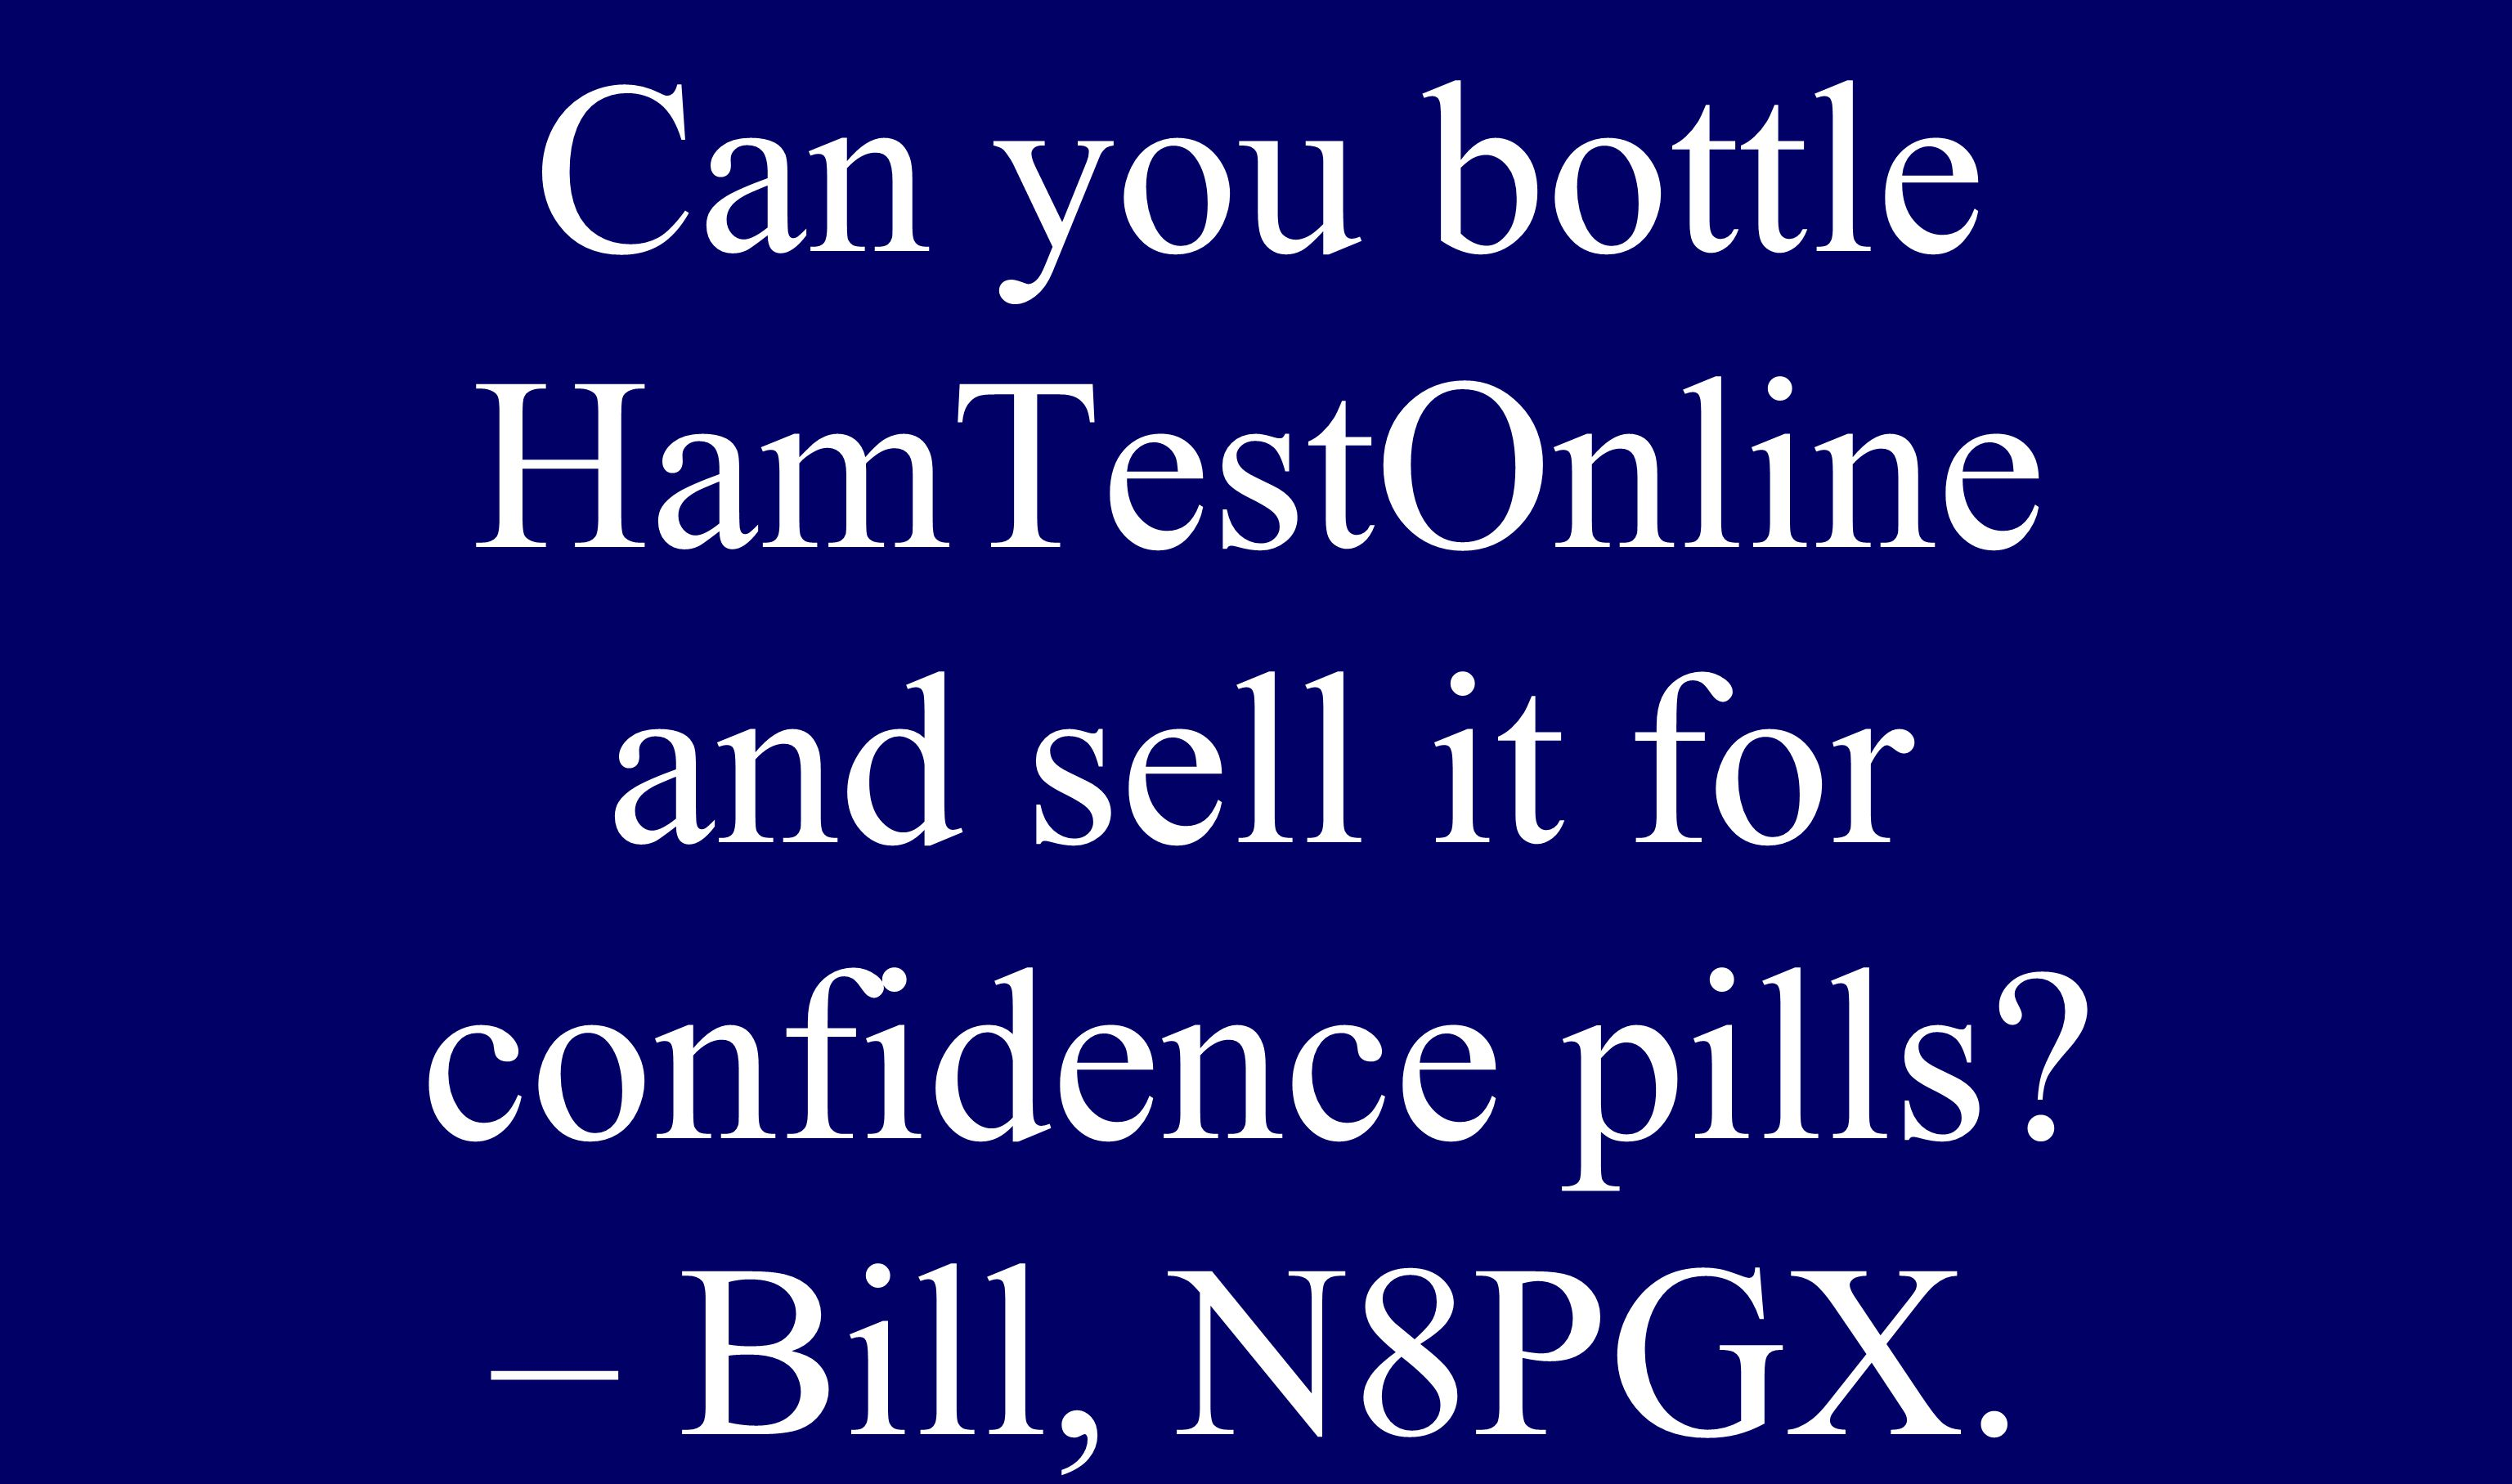 Can you bottle HamTestOnline and sell it for confidence pills? – Bill, N8PGX.